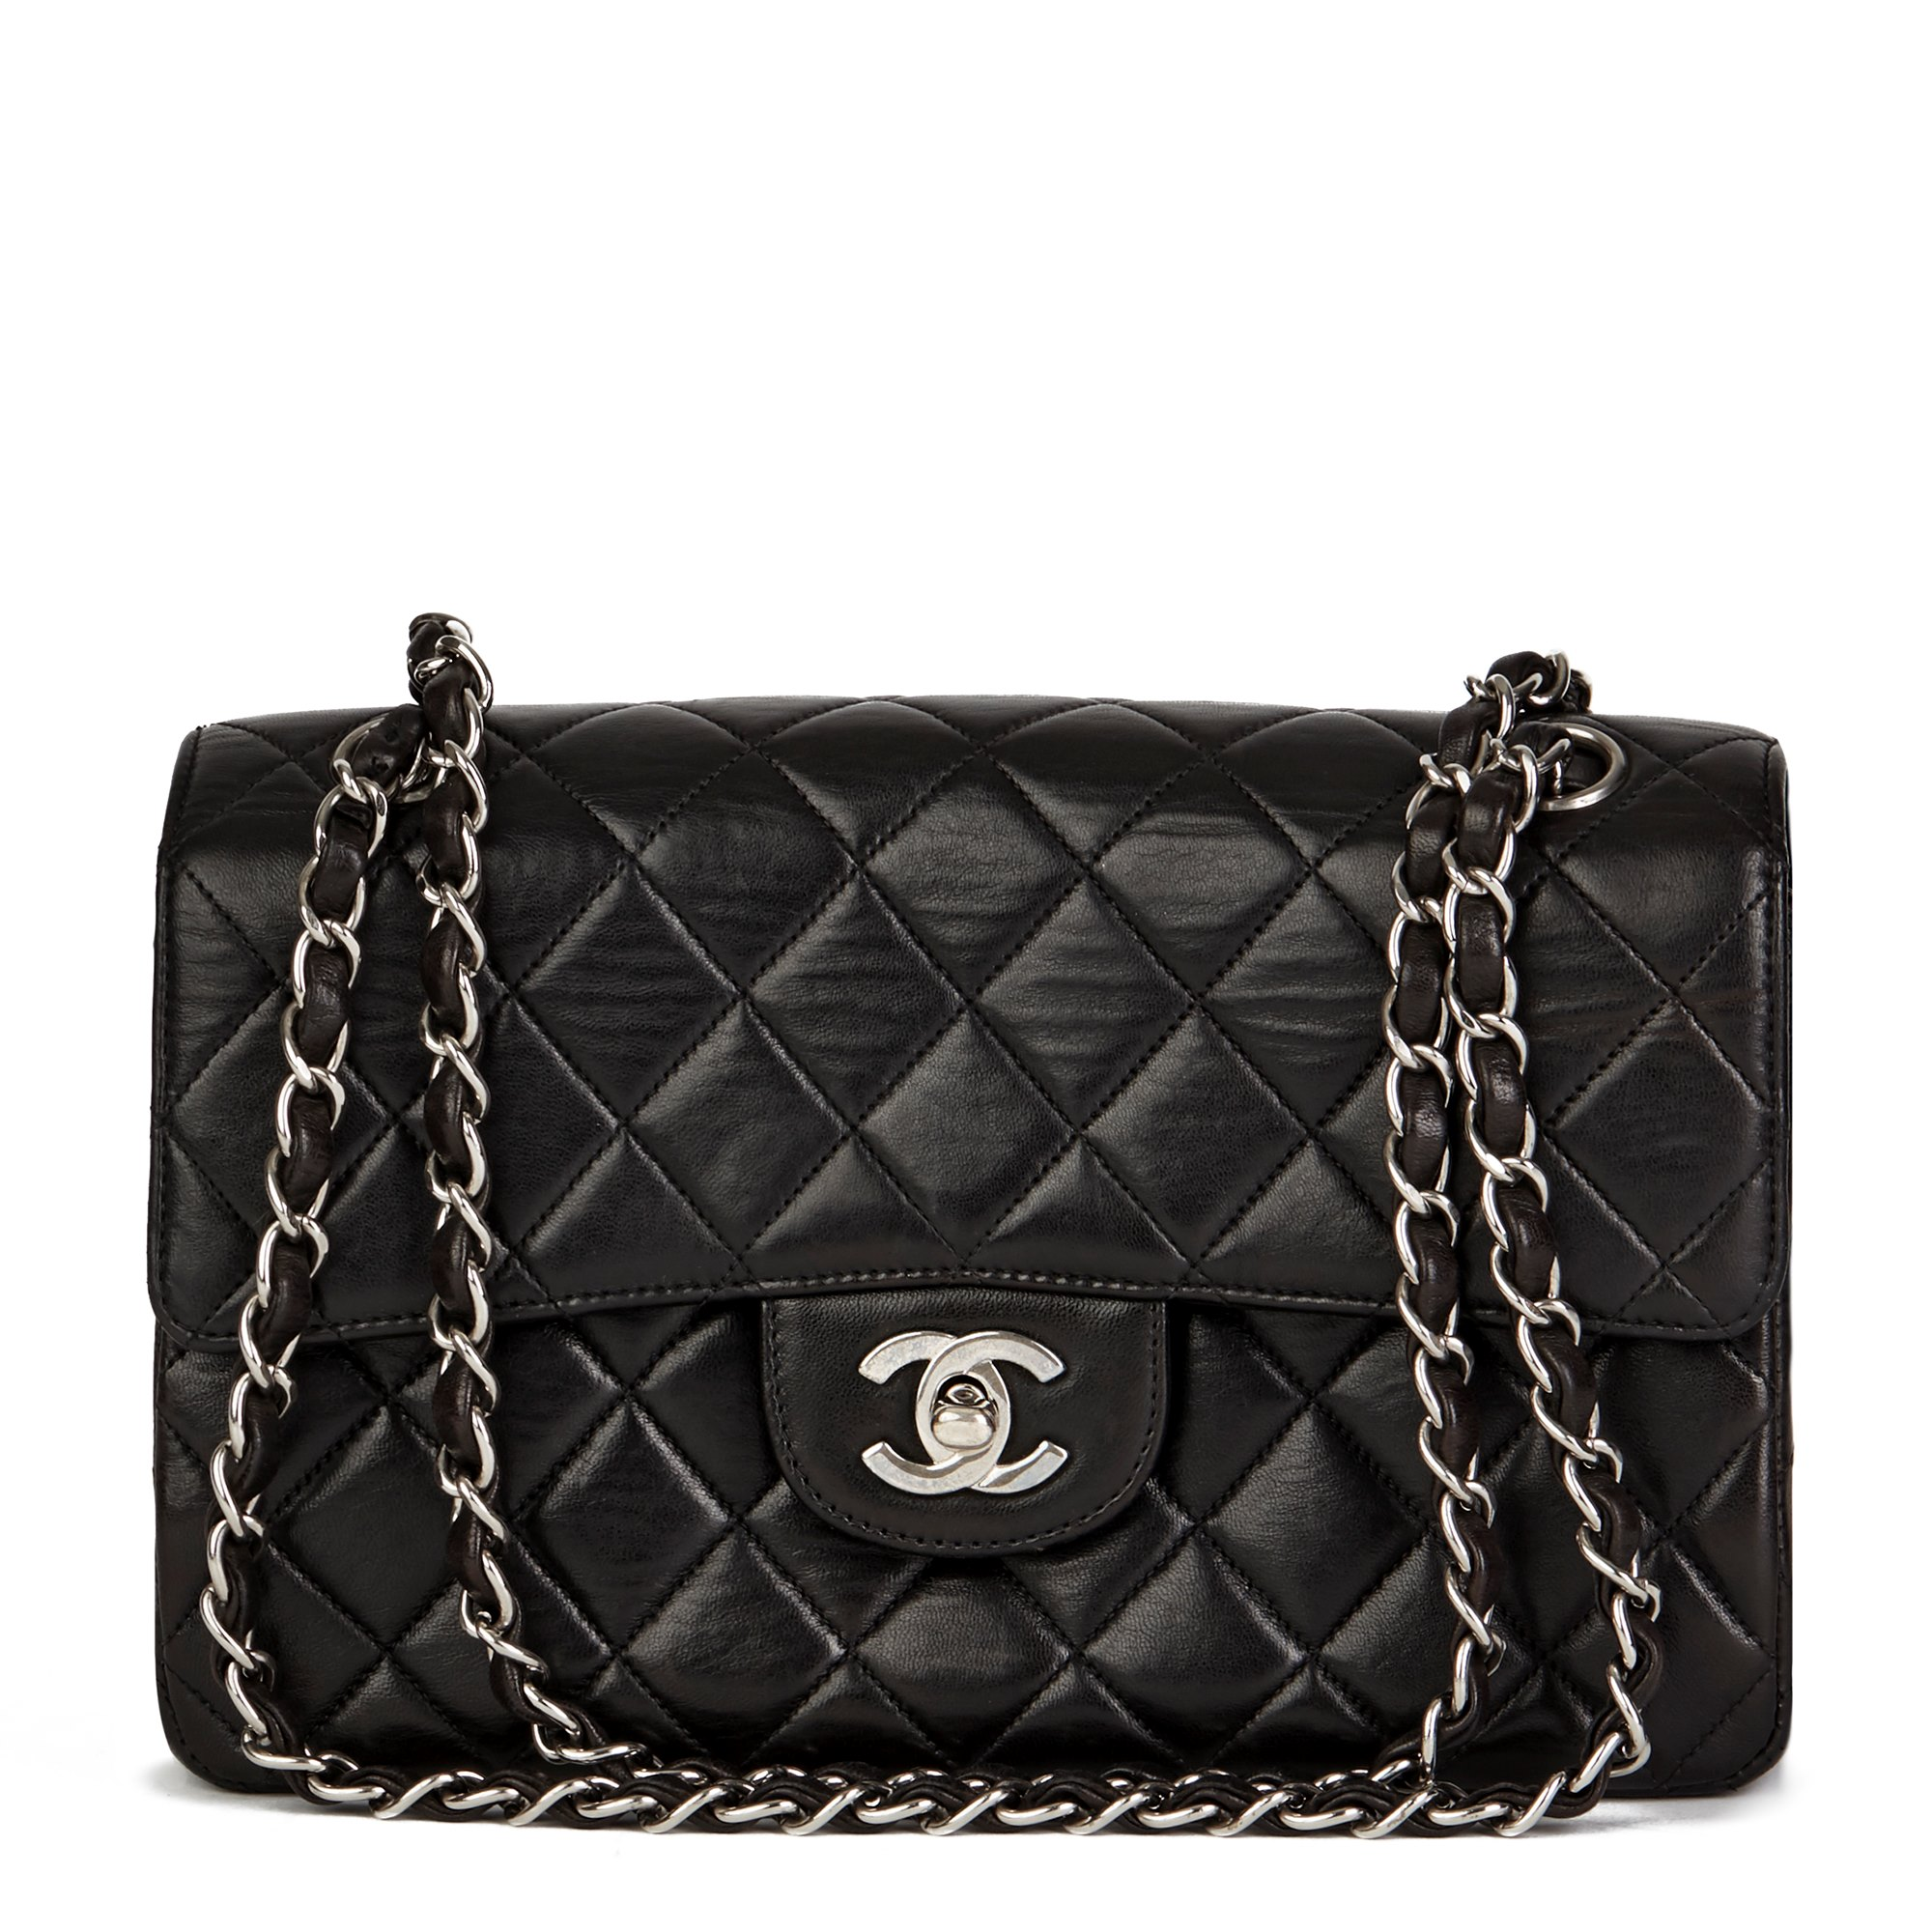 Chanel Black Lambskin Vintage Double Sided Classic Flap Bag